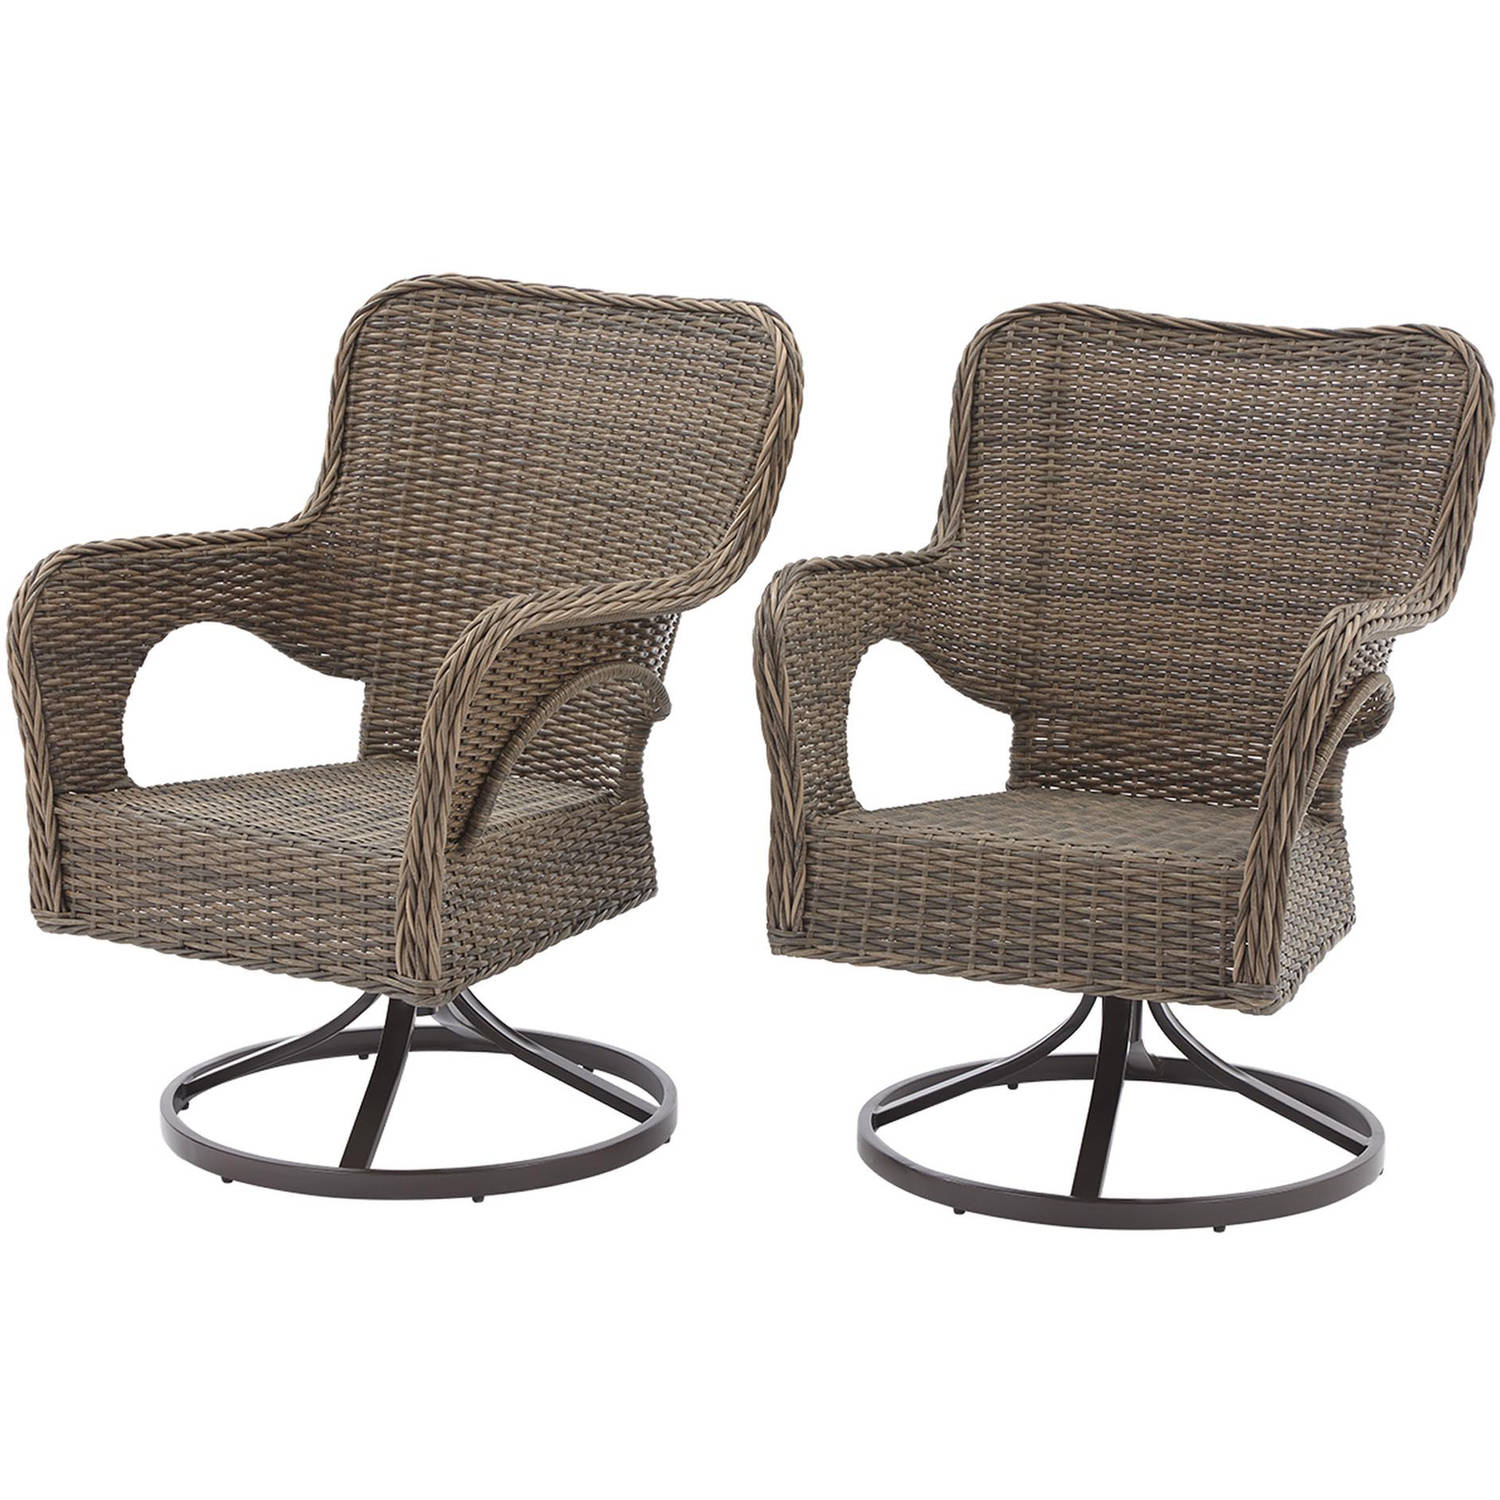 better homes and gardens camrose farmhouse mix and match wicker swivel chairs set of 2